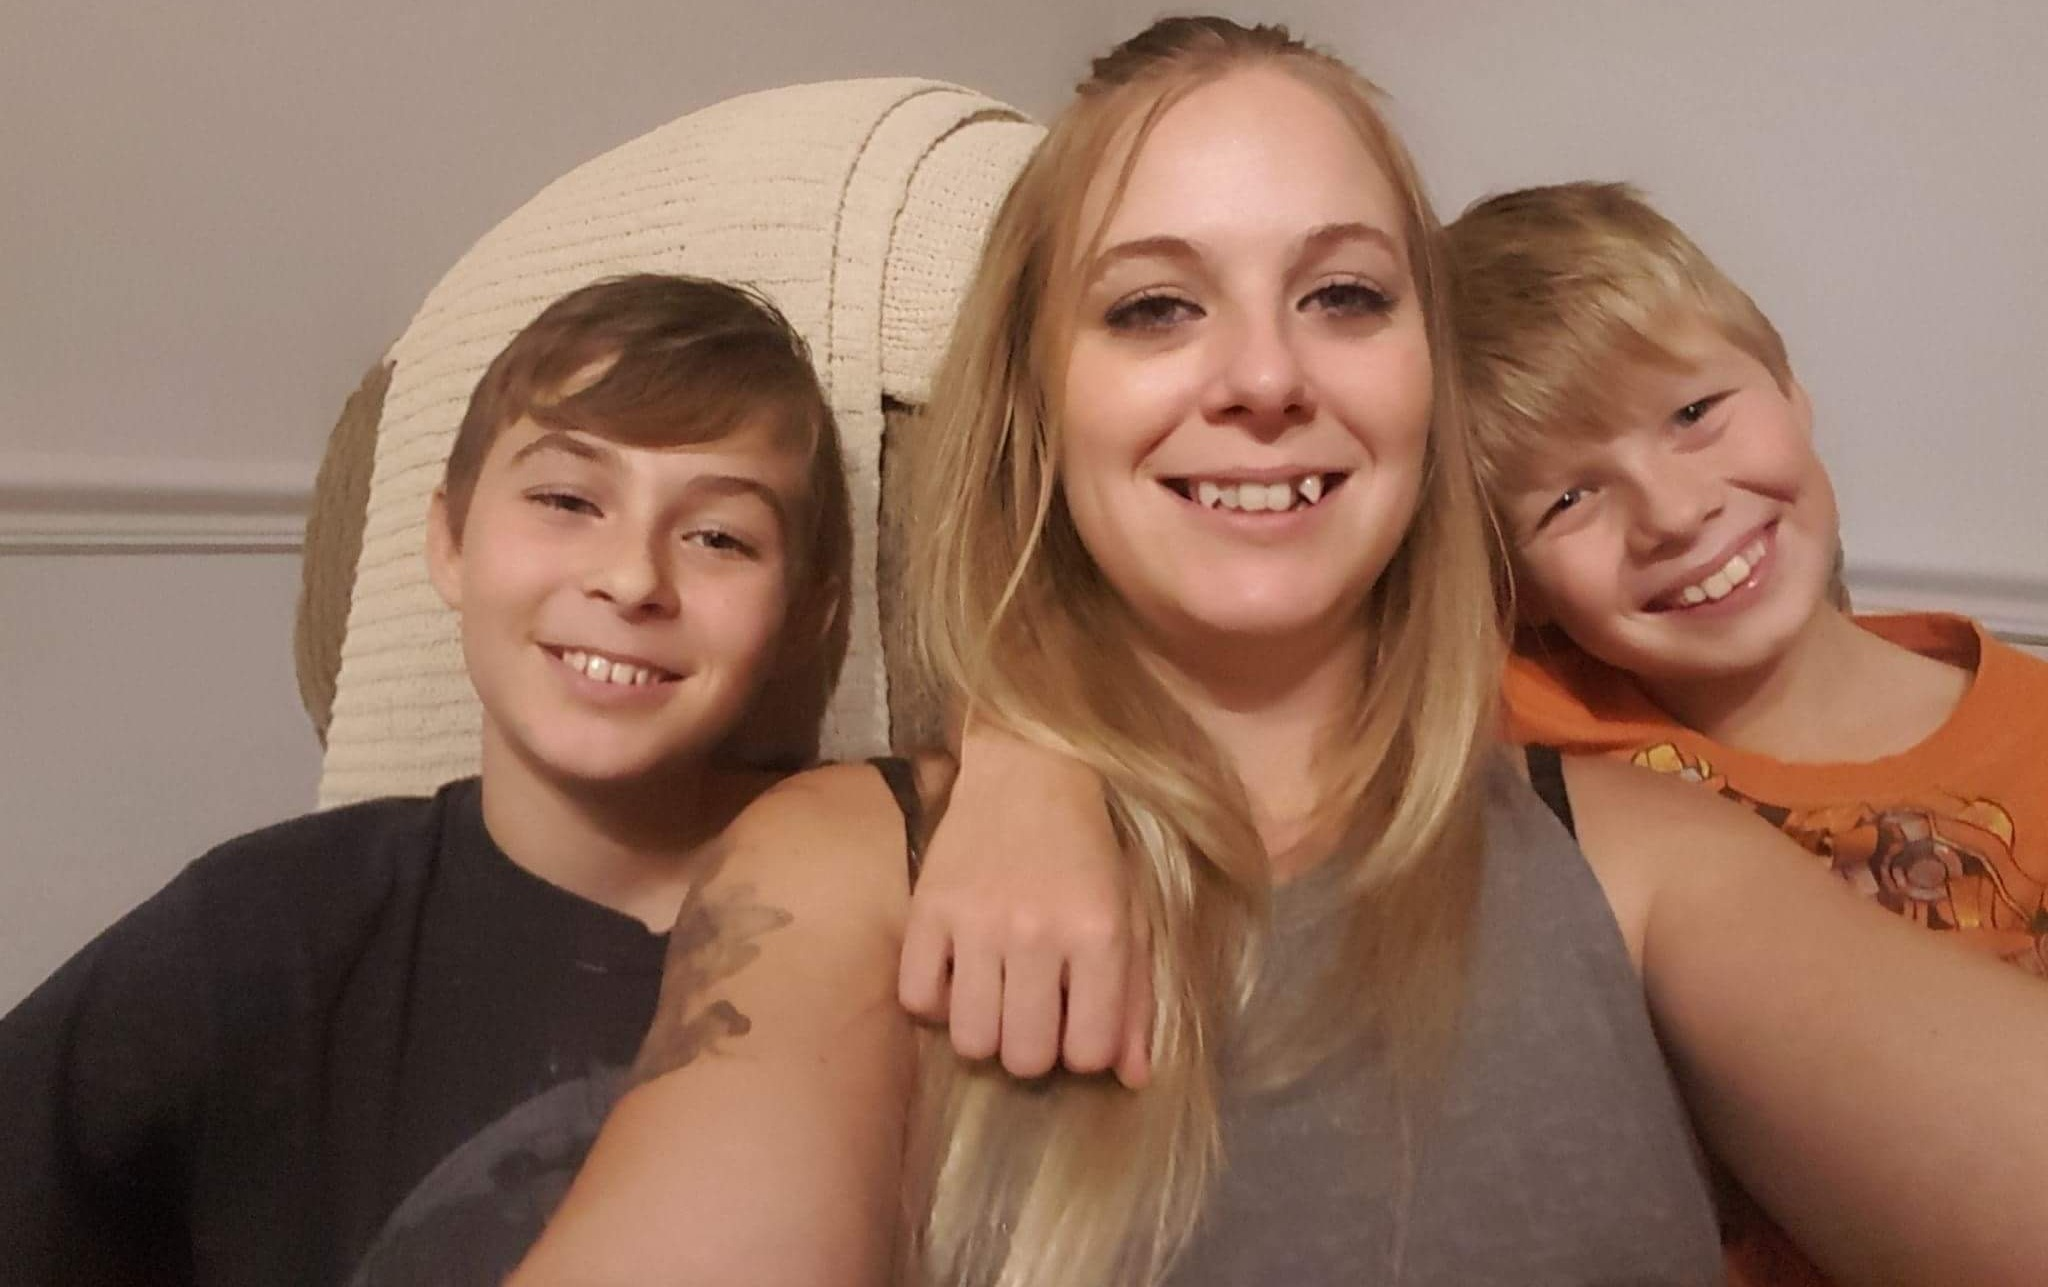 From the left (in black) Xander 12 yrs, Jennnifer (Mother to Xander and Chase) and Chase (in orange) 9 years.